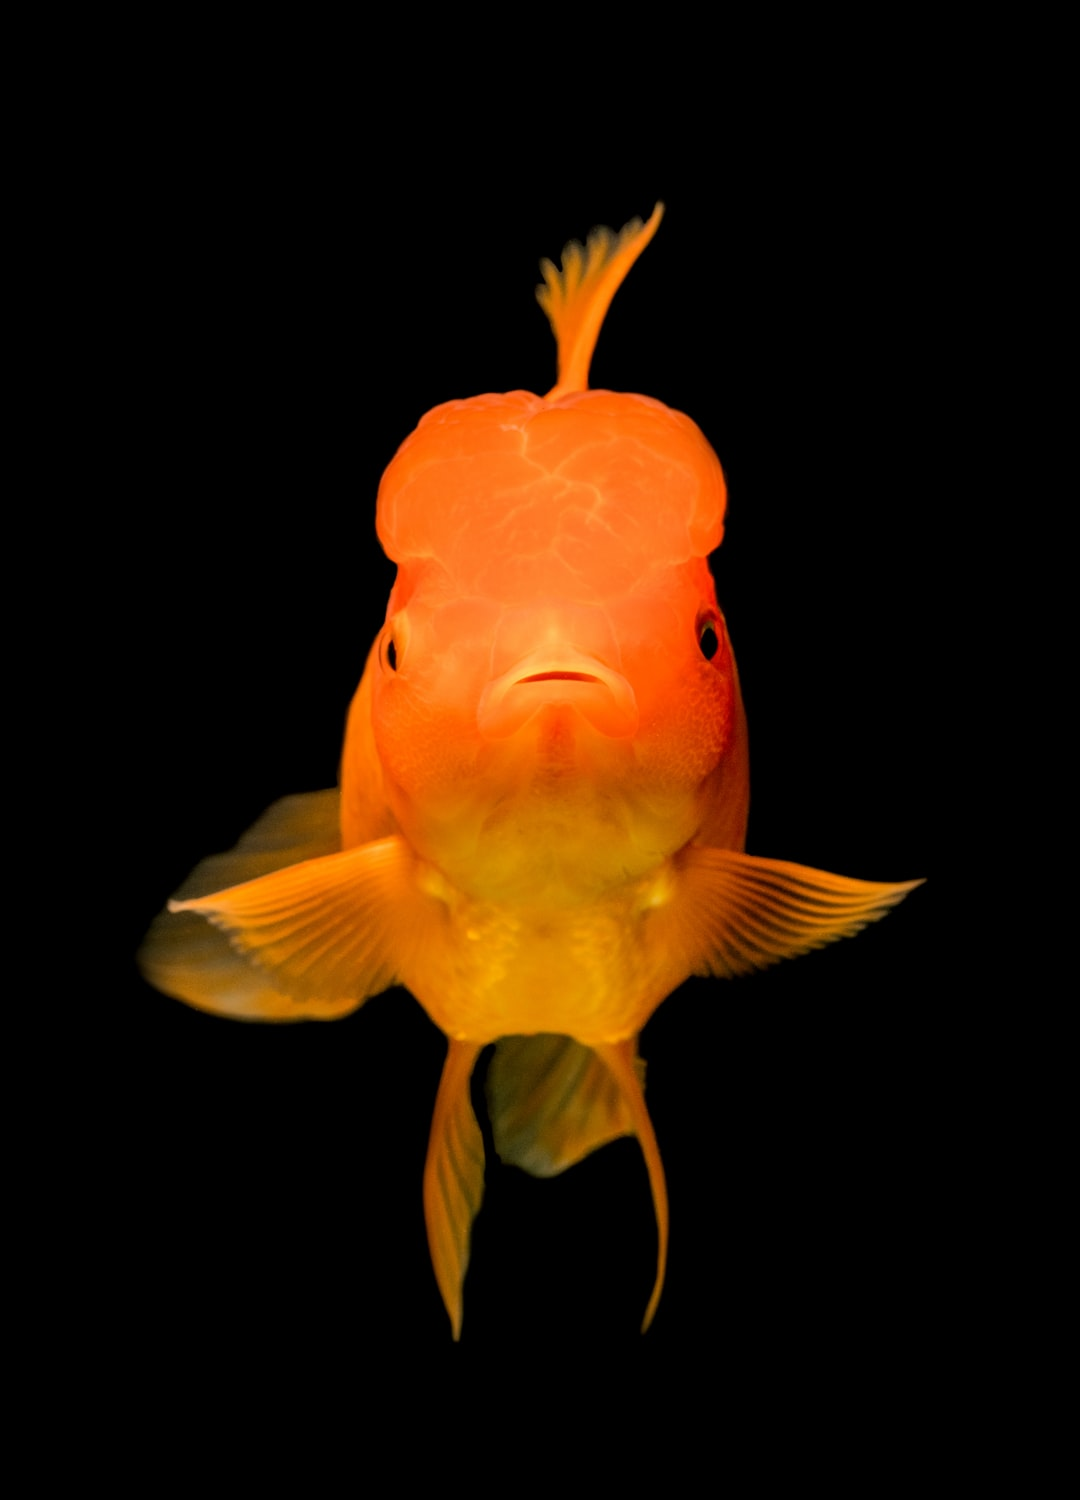 Goldfish are super cute in close up. First time taking goldfish photos and I just noticed how adorable they are.